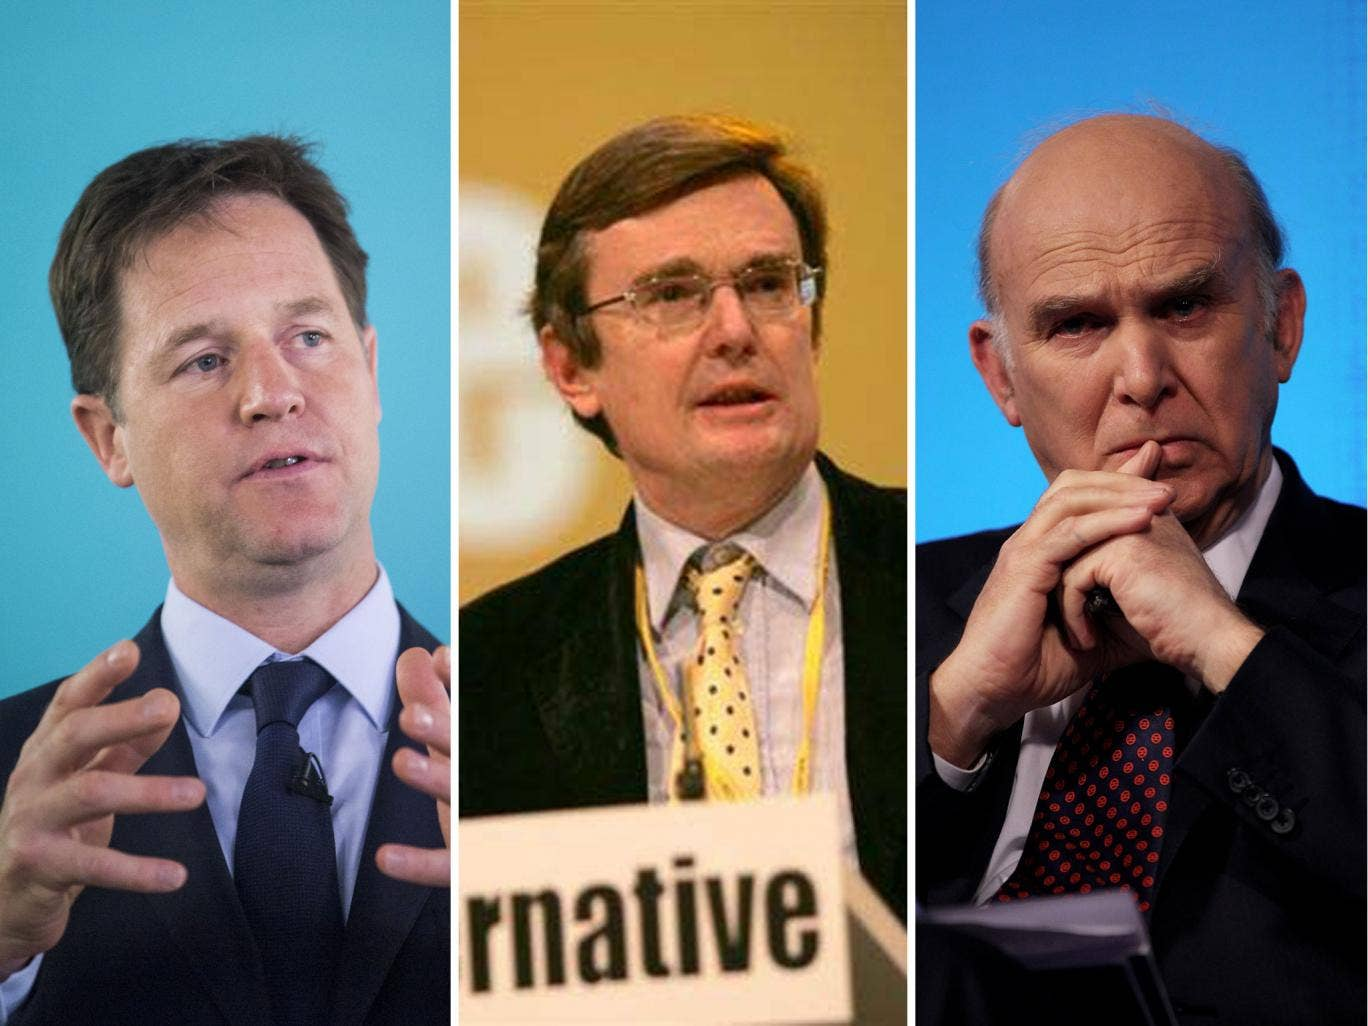 Lib Dem leader Nick Clegg, peer Lord Oakeshott and the Business Secretary, Vince Cable